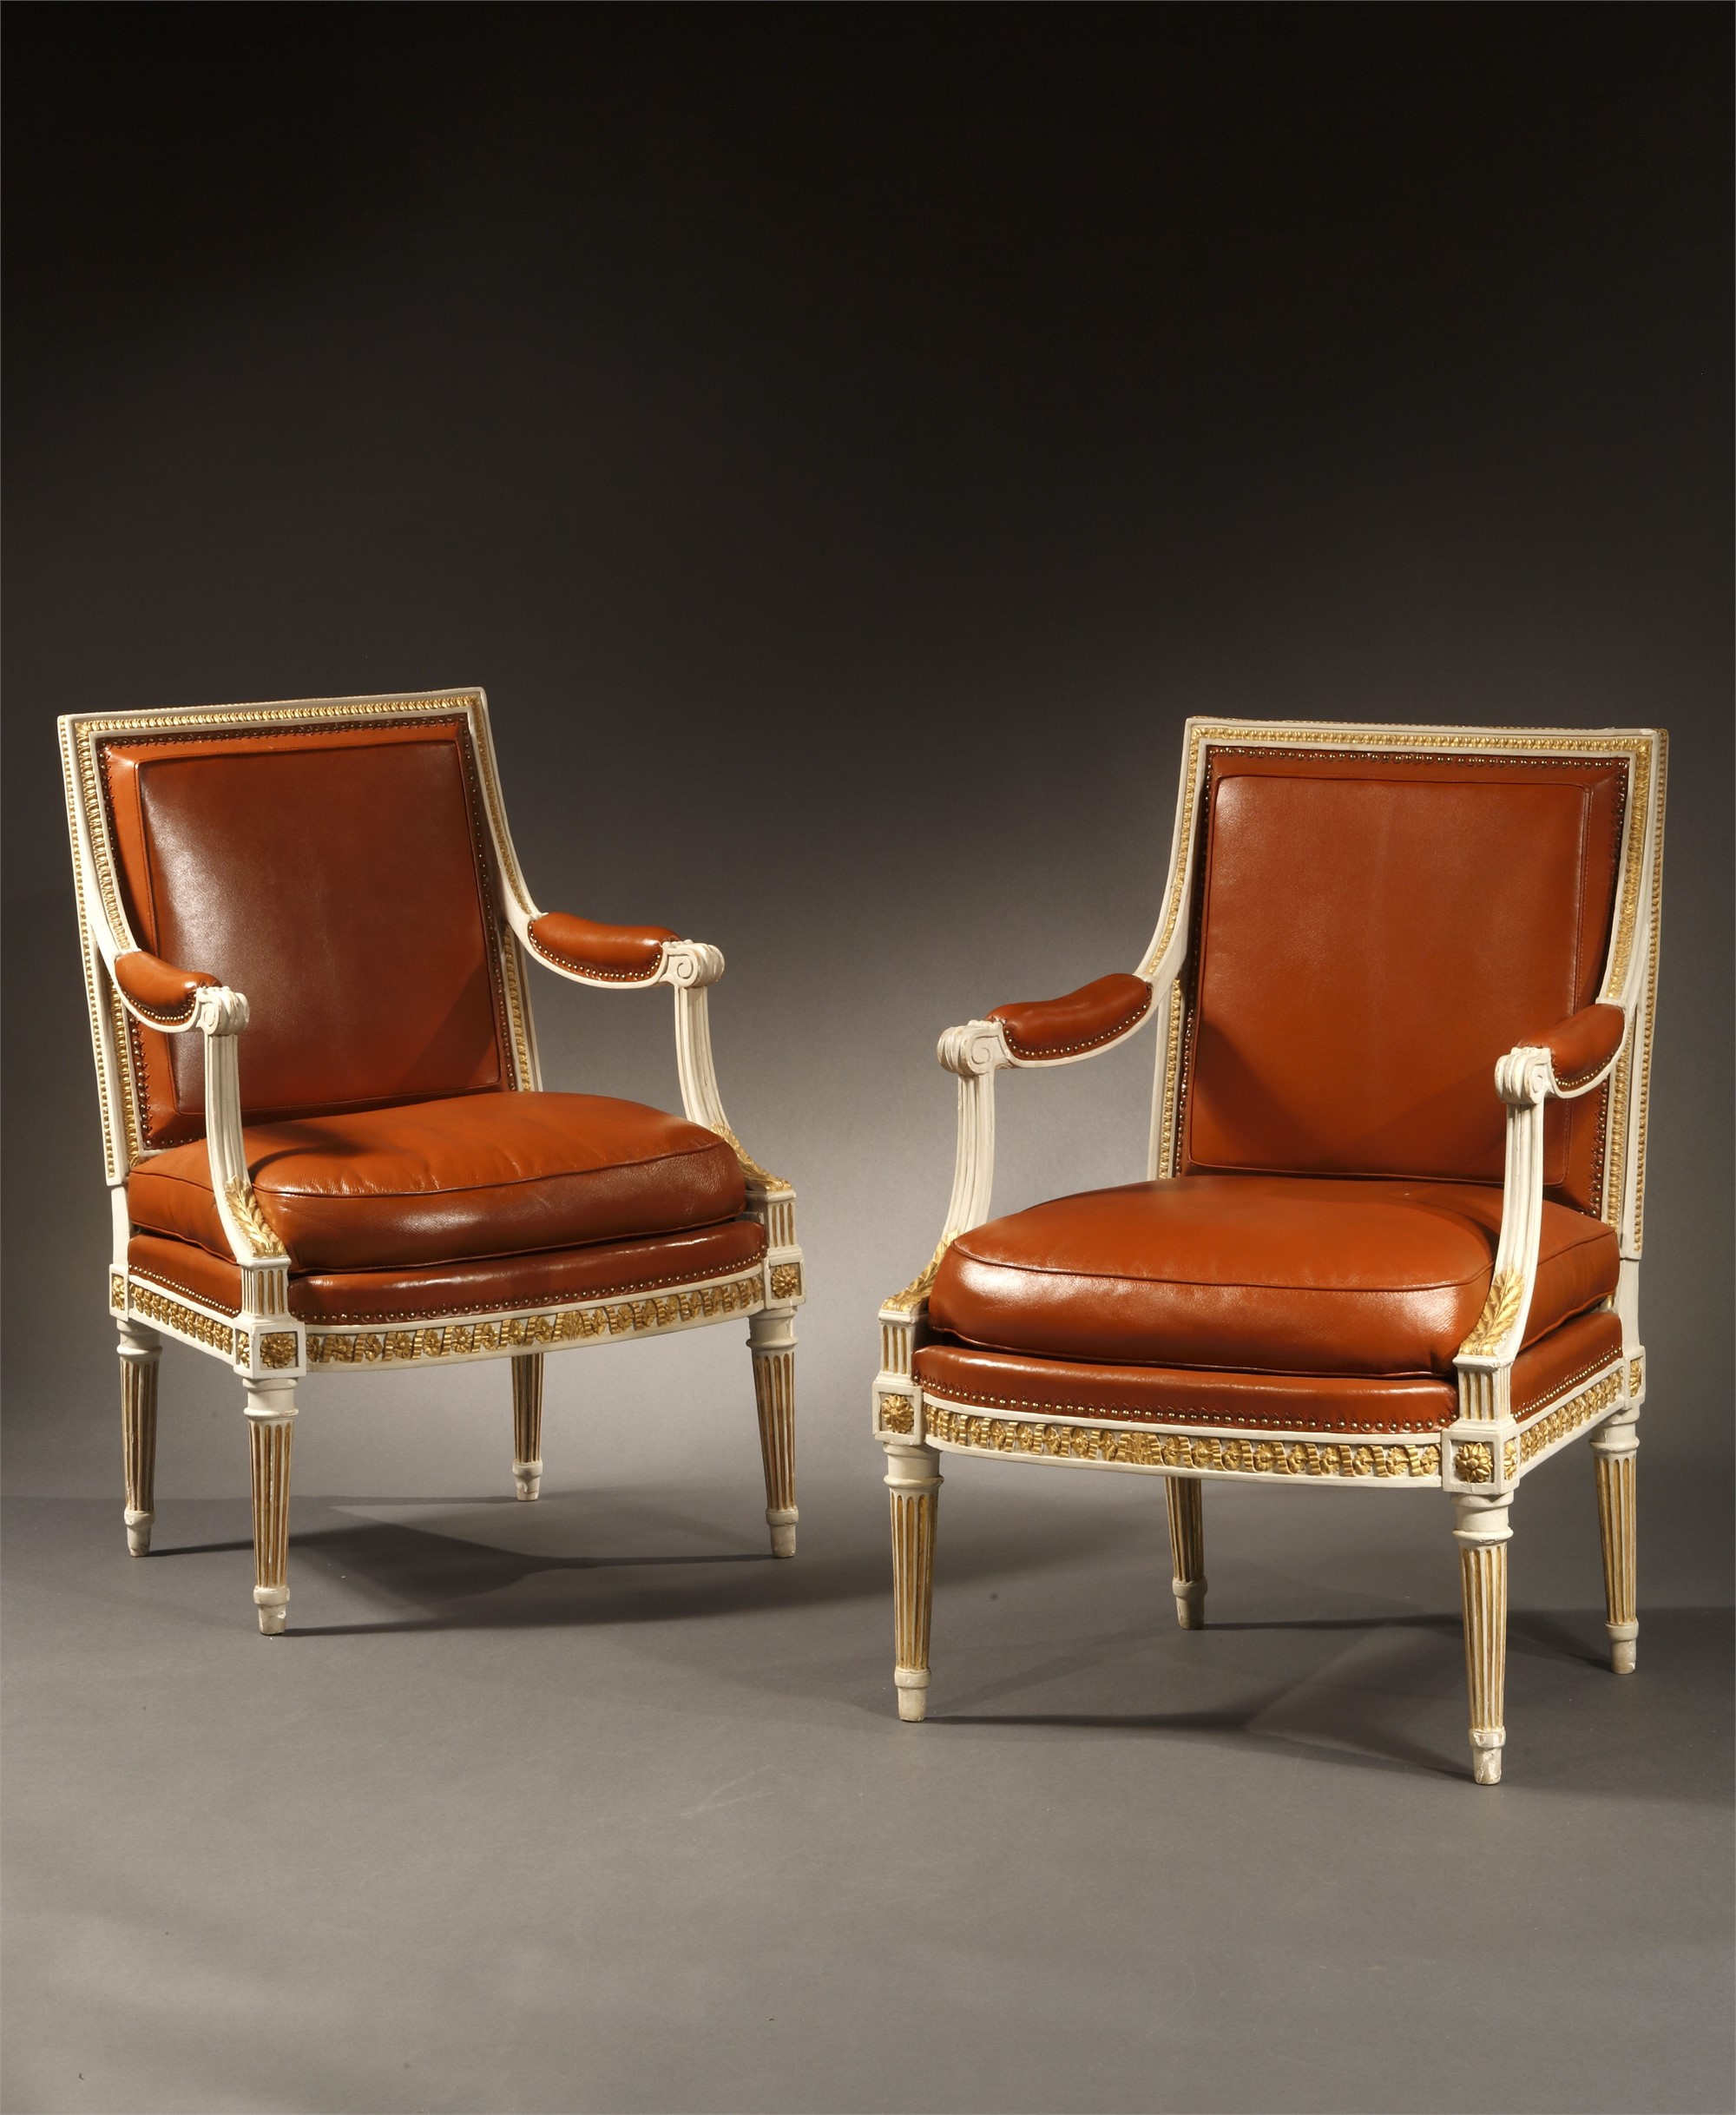 PAIR OF LOUIS XVI PAINTED AND PARCEL GILT FAUTEUILS STAMPED H. JACOB by Henri Jacob